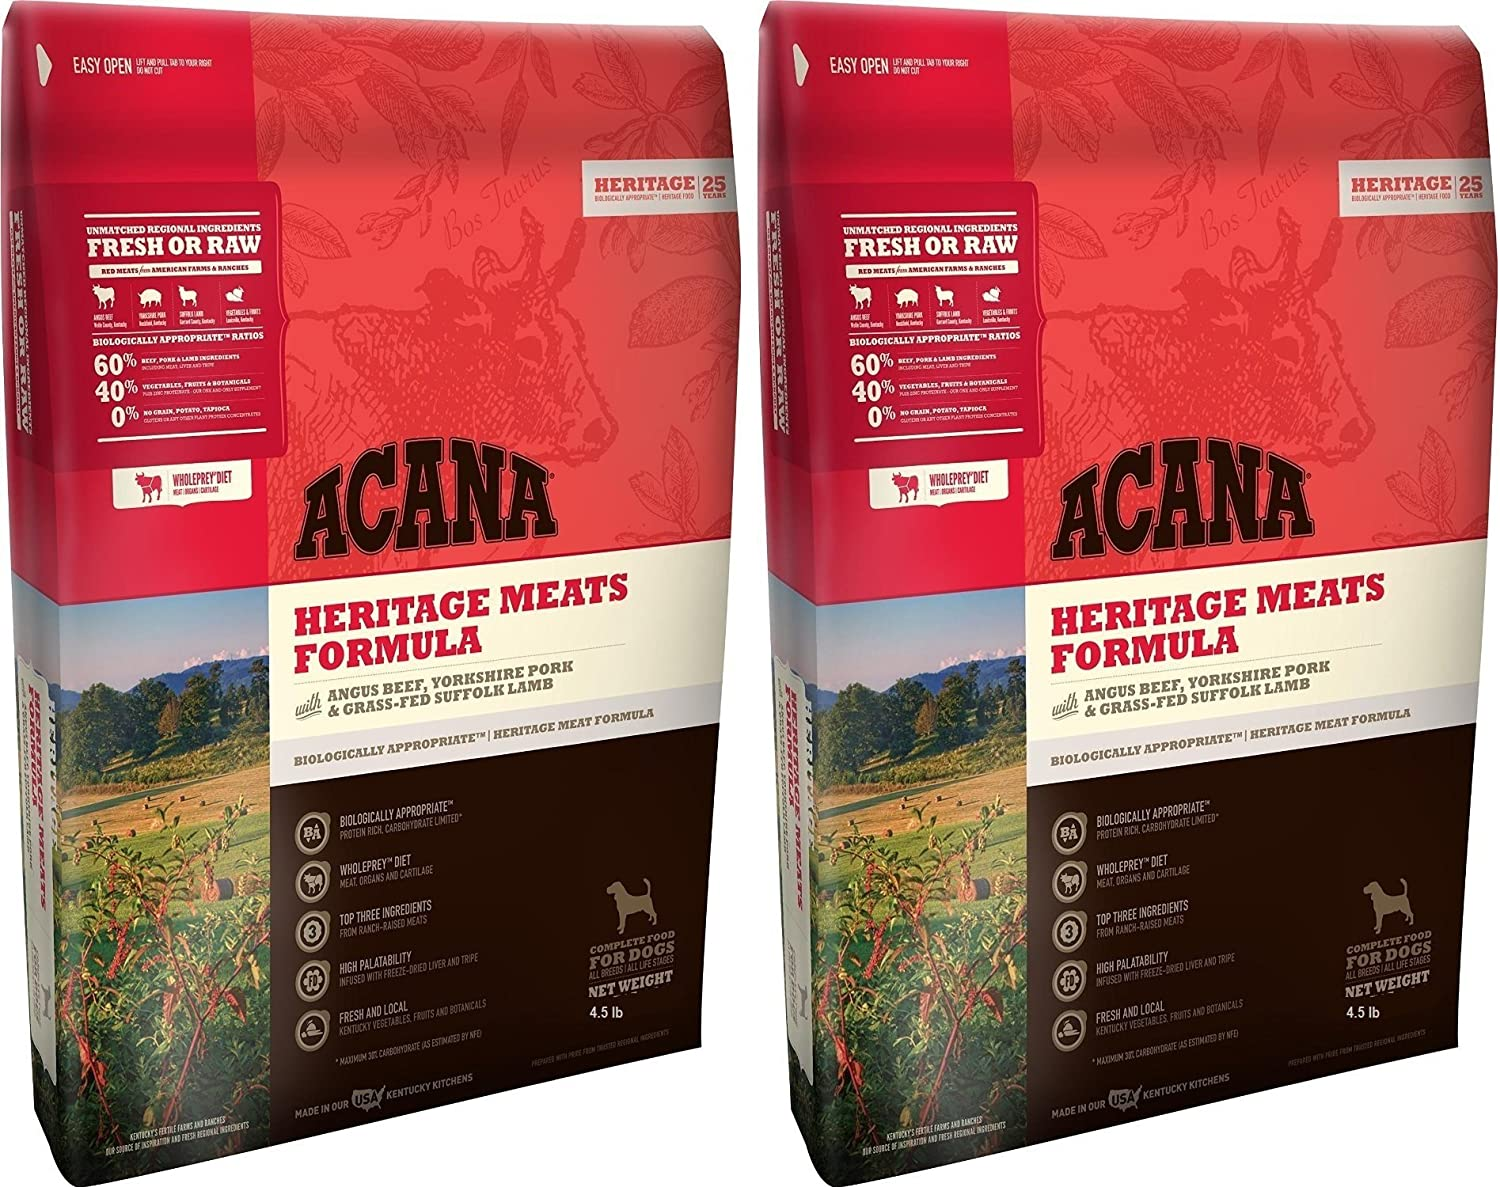 ACANA Heritage Meats Dog Food, 4.5 Pound Bag (2 Pack)